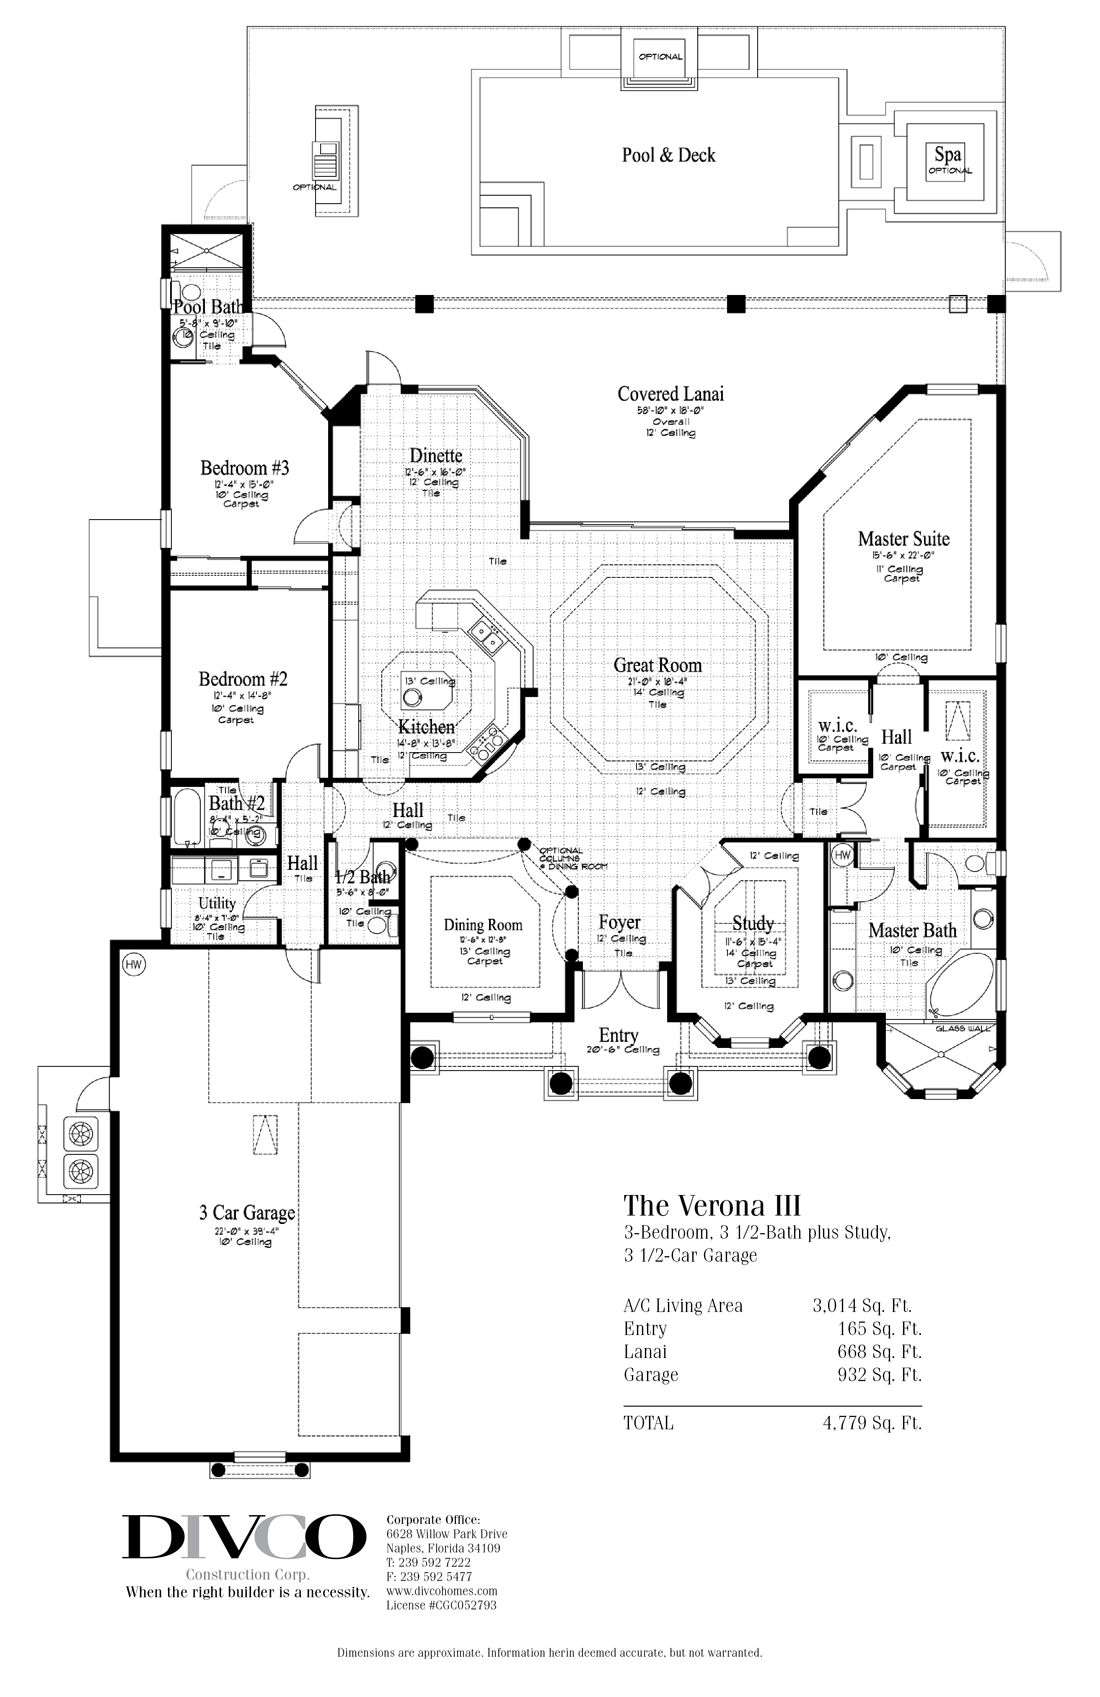 Luxury Home Floor Plans   Custom Home Builder Naples Florida   DIVCO FLOOR  PLAN The Verona